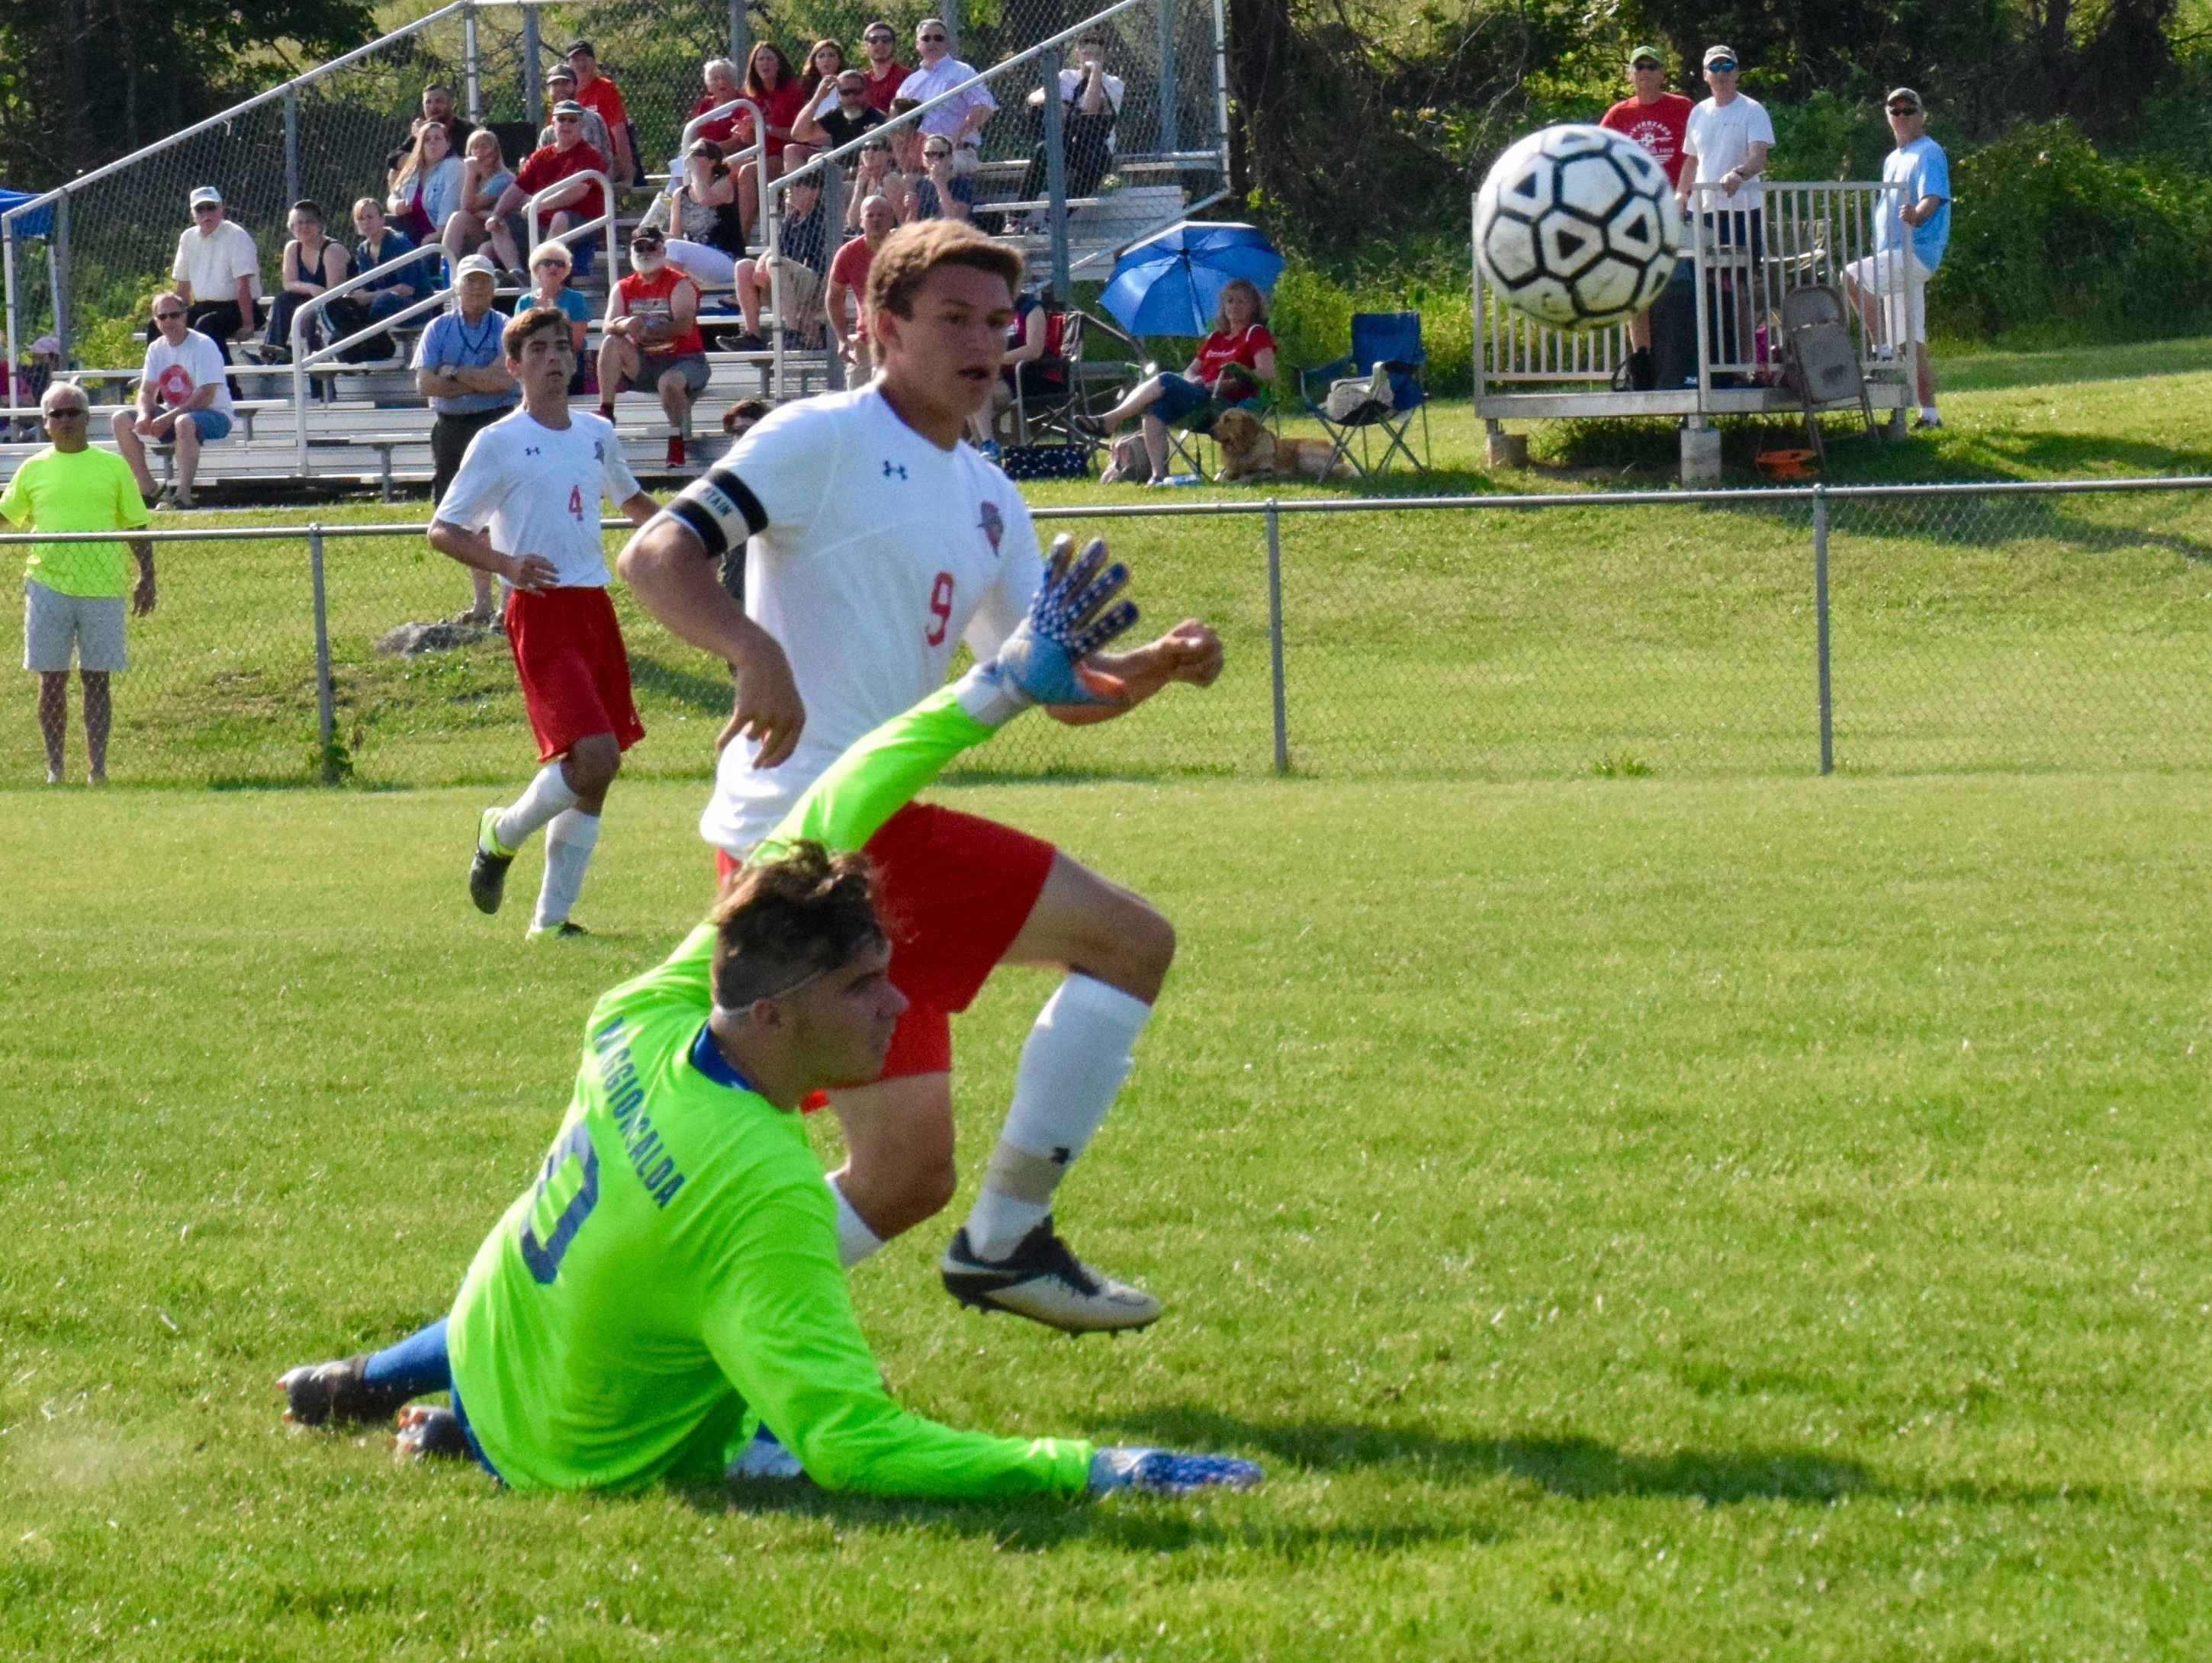 Riverheads' James Kasak nudges the ball past Mathews keeper Joseph Maggioncalda for a goal during the first half of the Gladiators' Region 1A East semifinal on Wednesday, June 1, 2016, at Riverheads High School in Greenville.